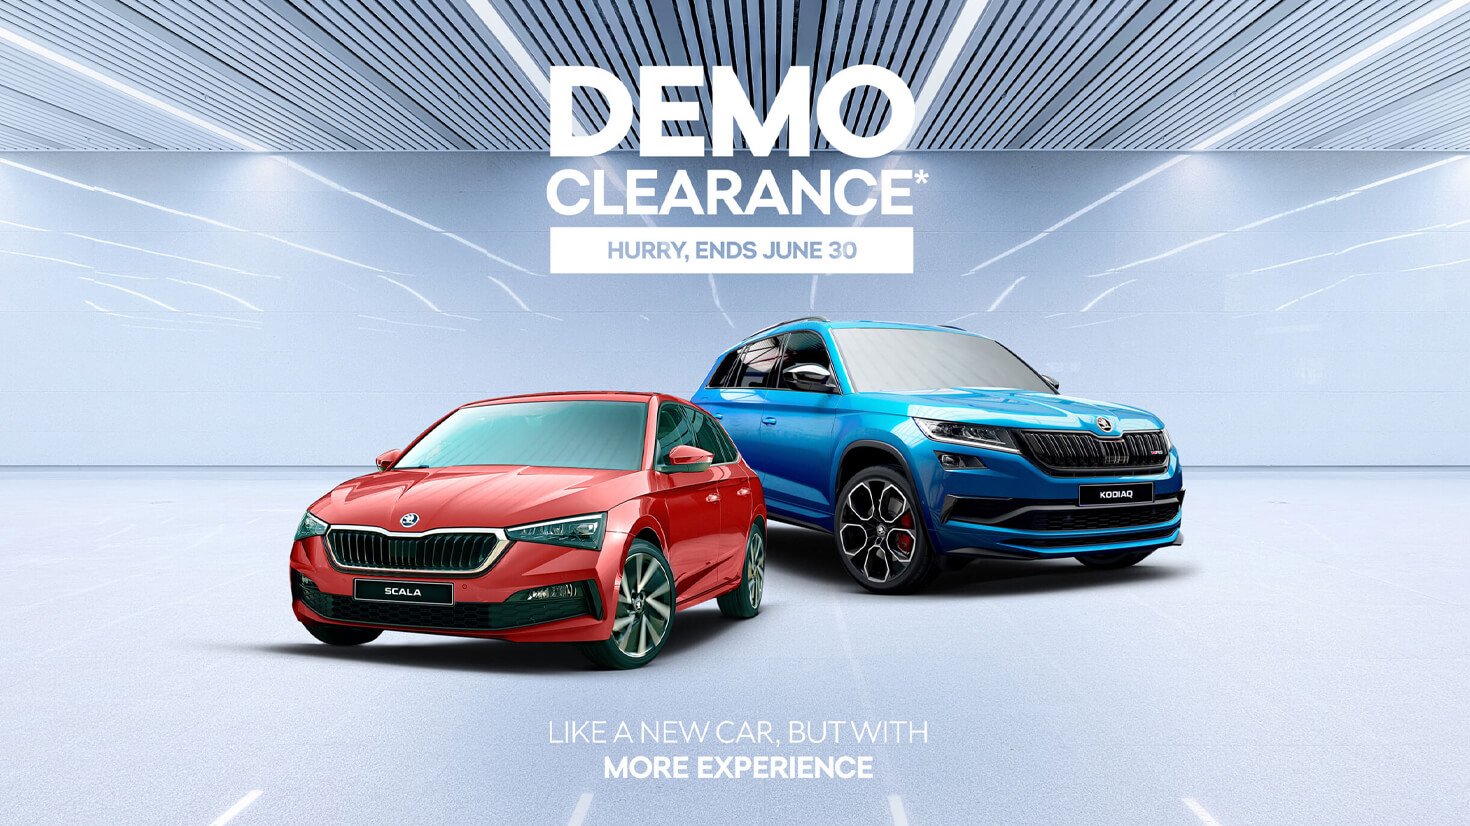 DEMO CLEARANCE* <br>HURRY, ENDS JUNE 30